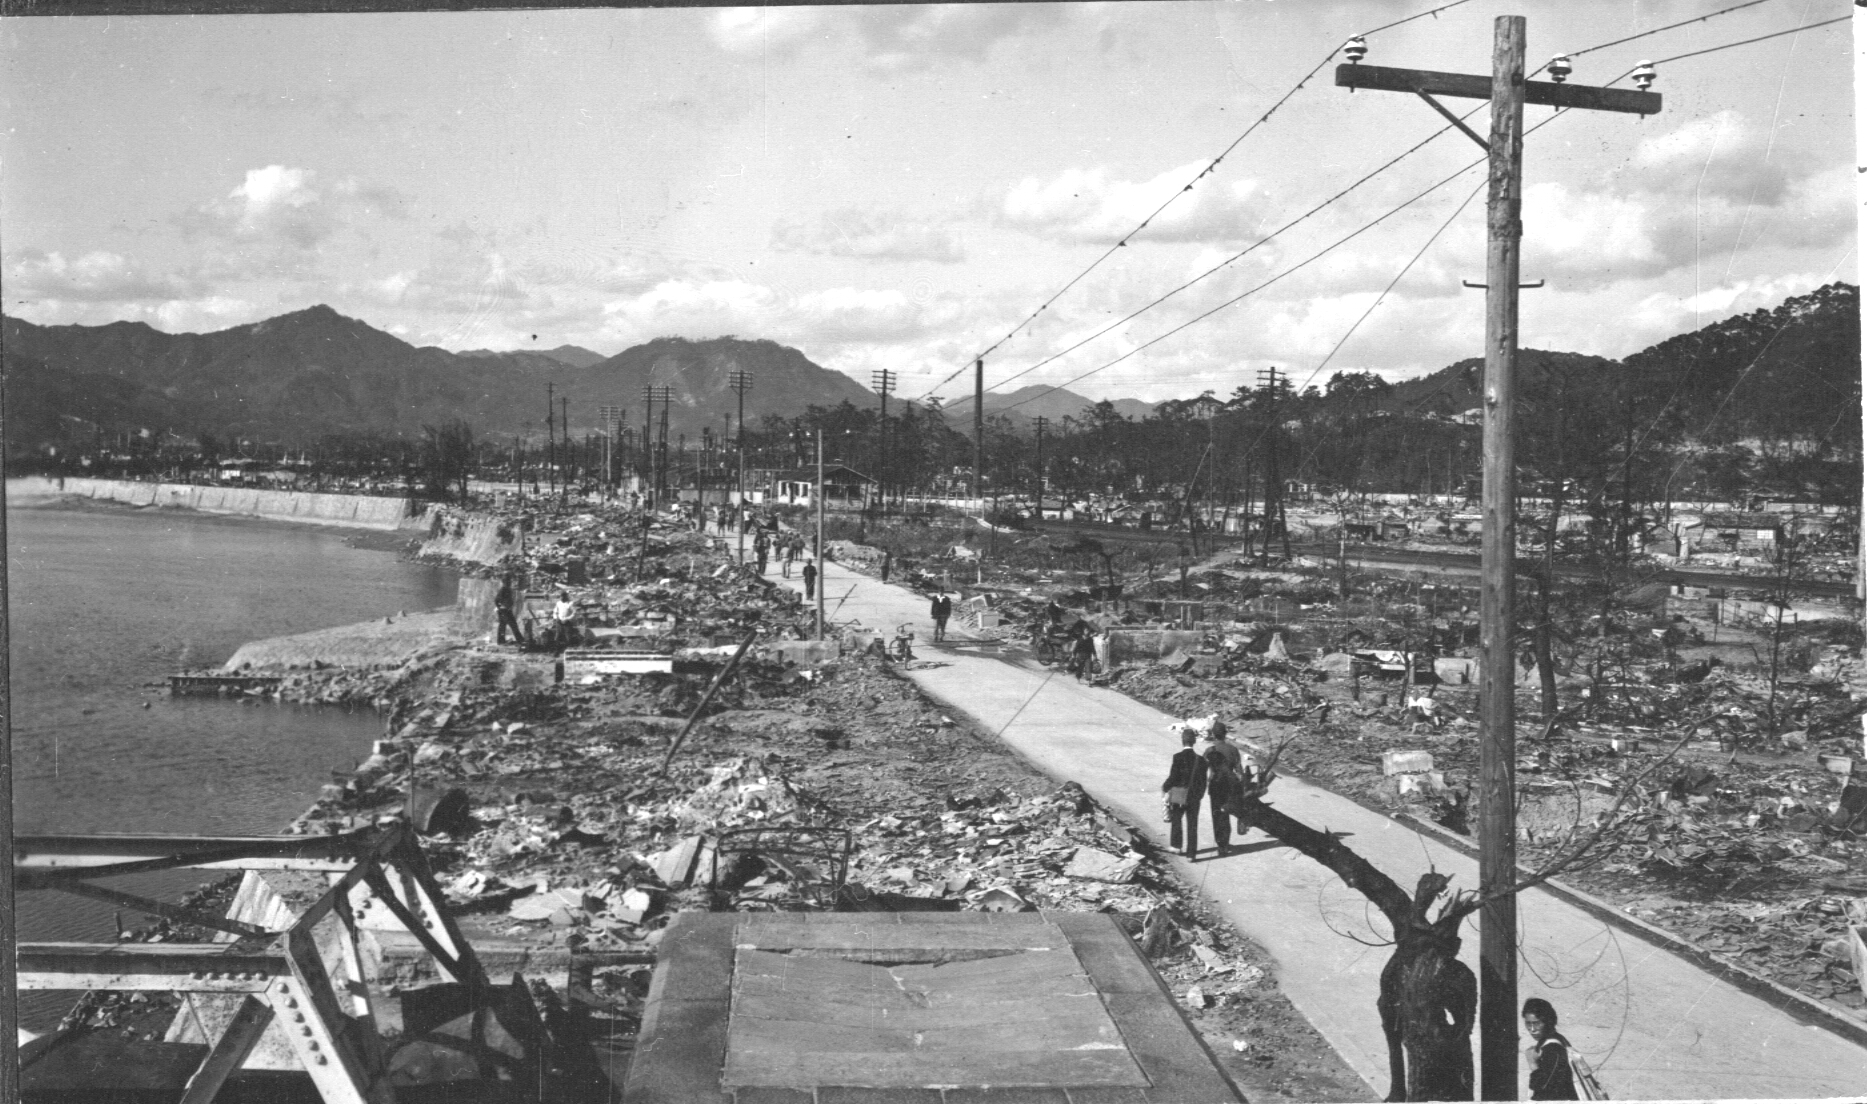 Photograph of Hiroshima after atomic bomb. People walk along a path. A stream or river is to the left of the frame. Power lines are intact.